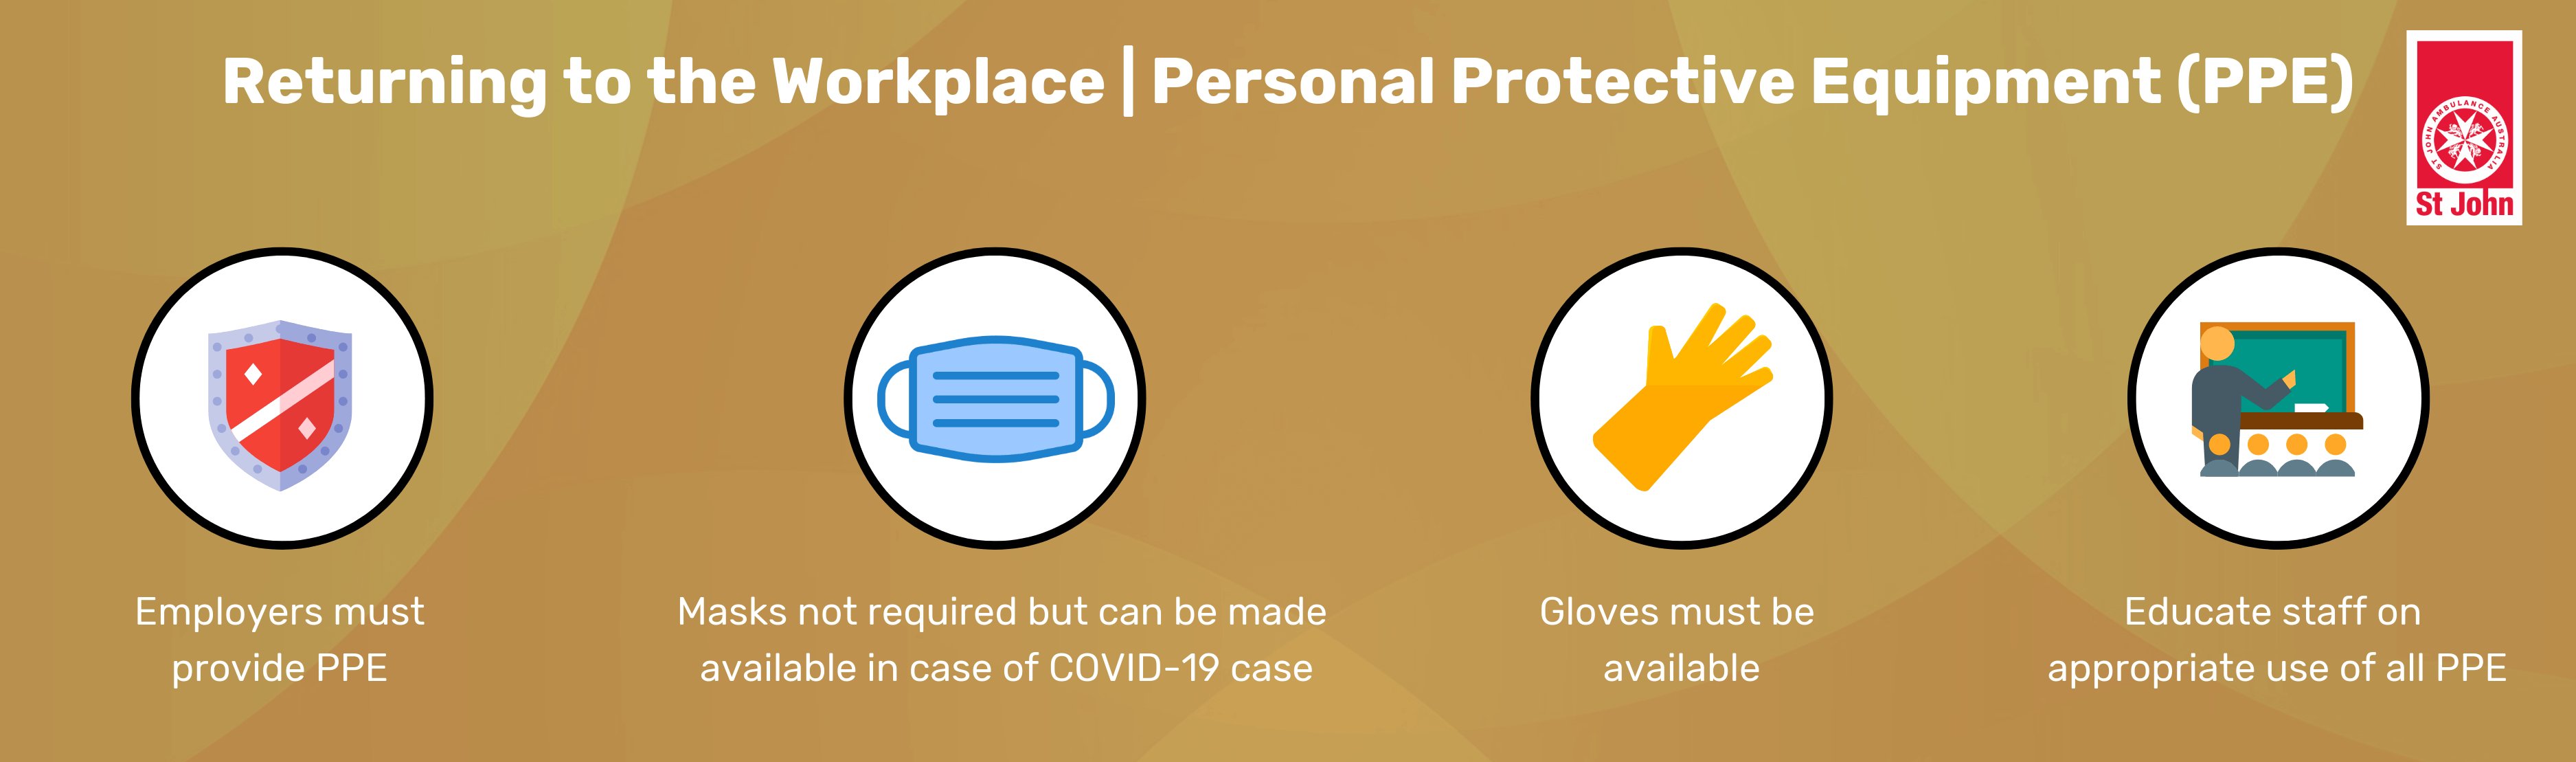 Returning to the Workplace During COVID-19 Personal Protective Equipment PPE